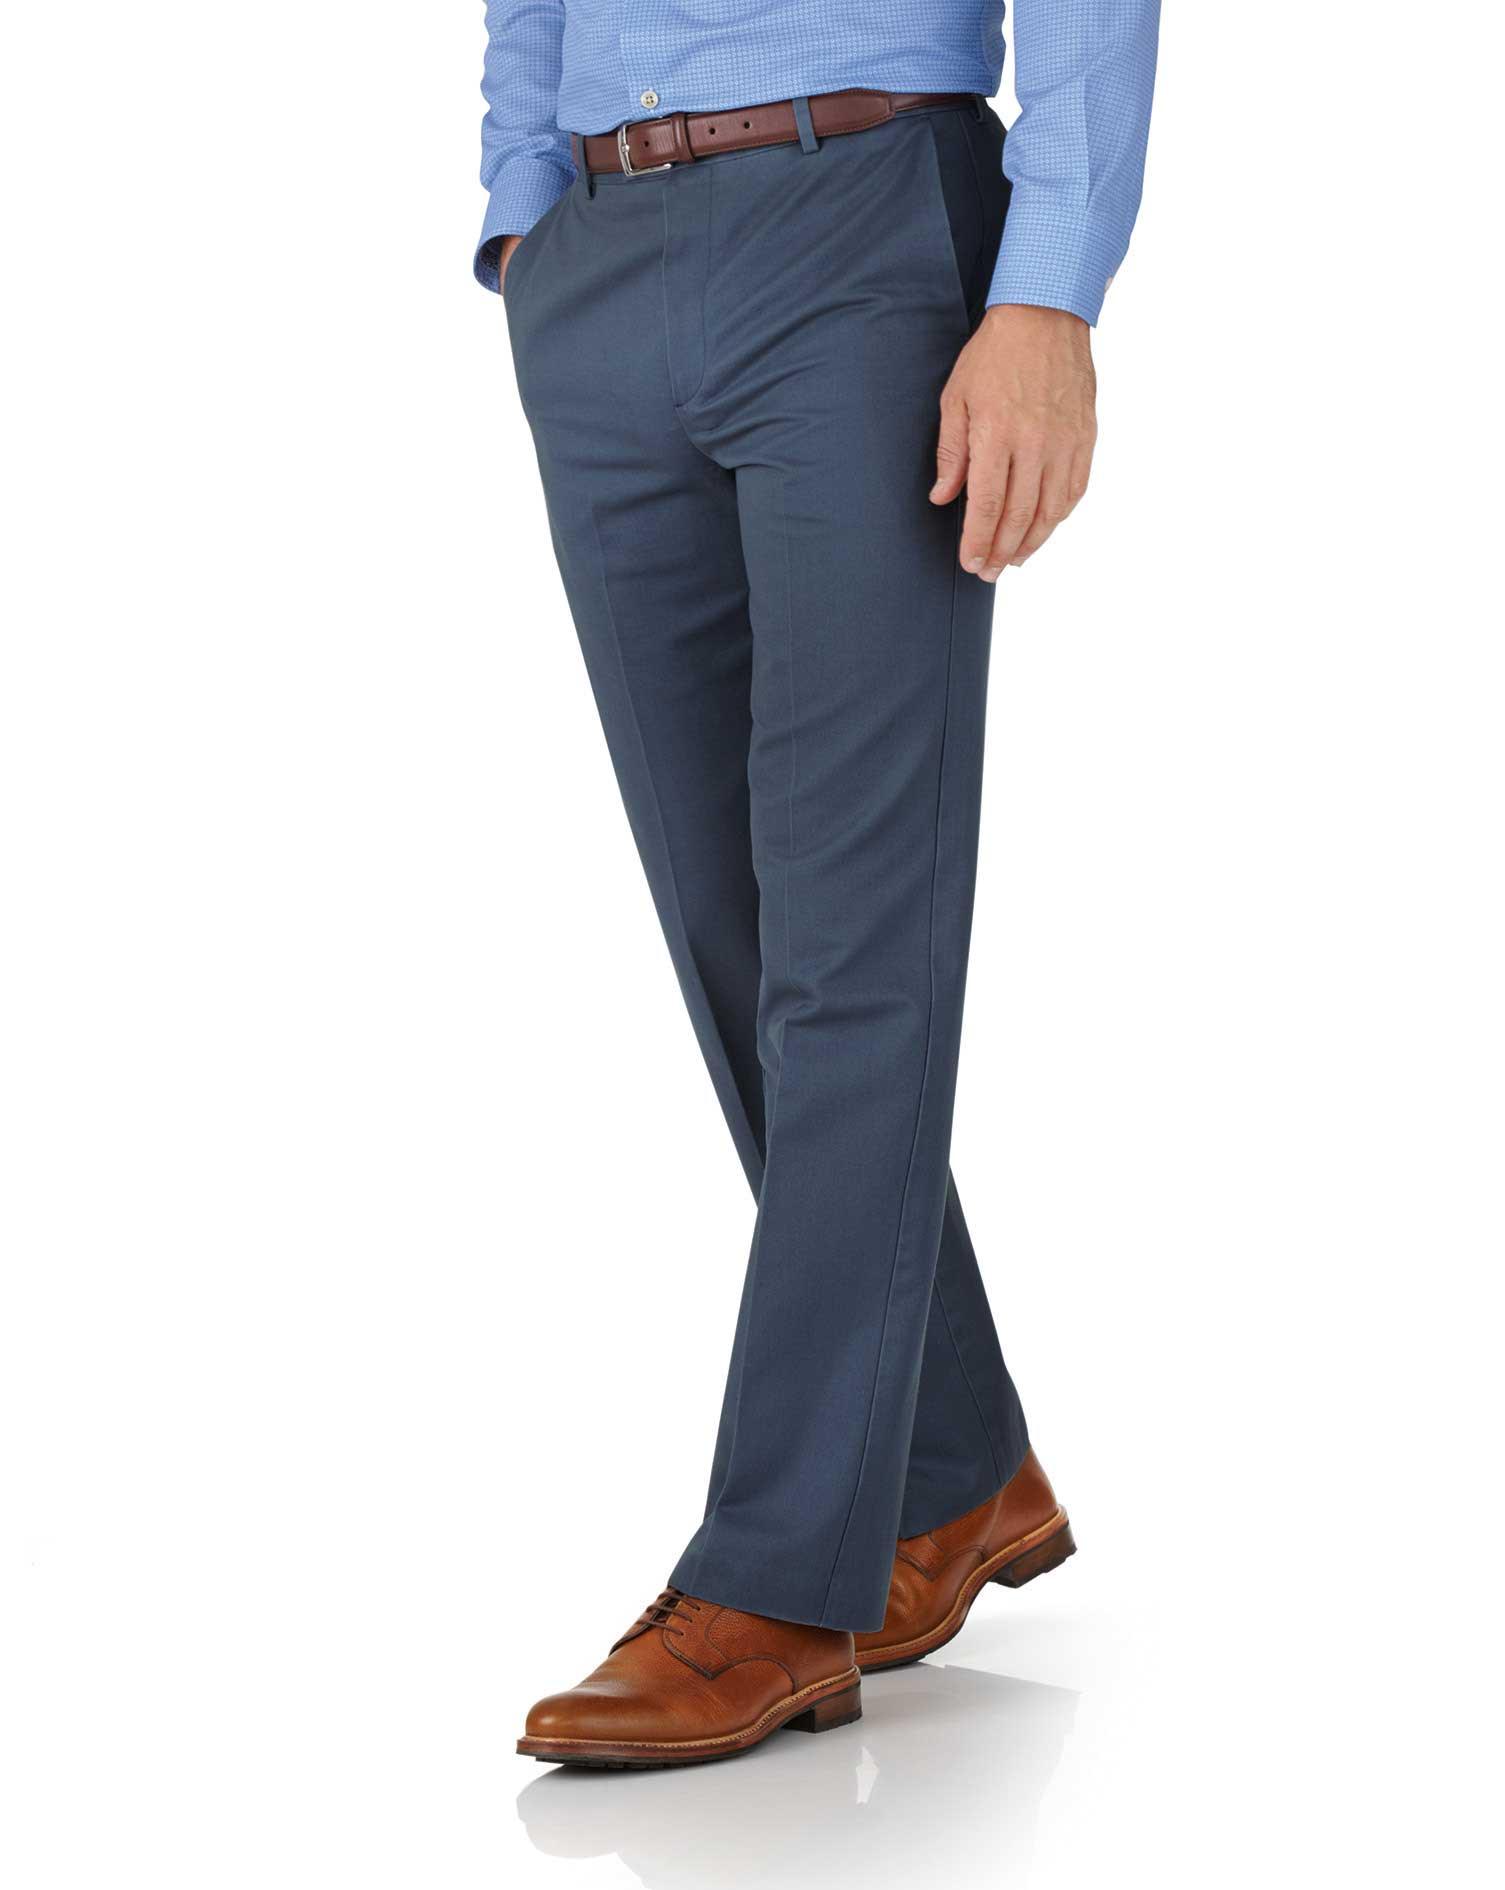 Airforce Blue Classic Fit Flat Front Non-Iron Cotton Chino Trousers Size W38 L34 by Charles Tyrwhitt